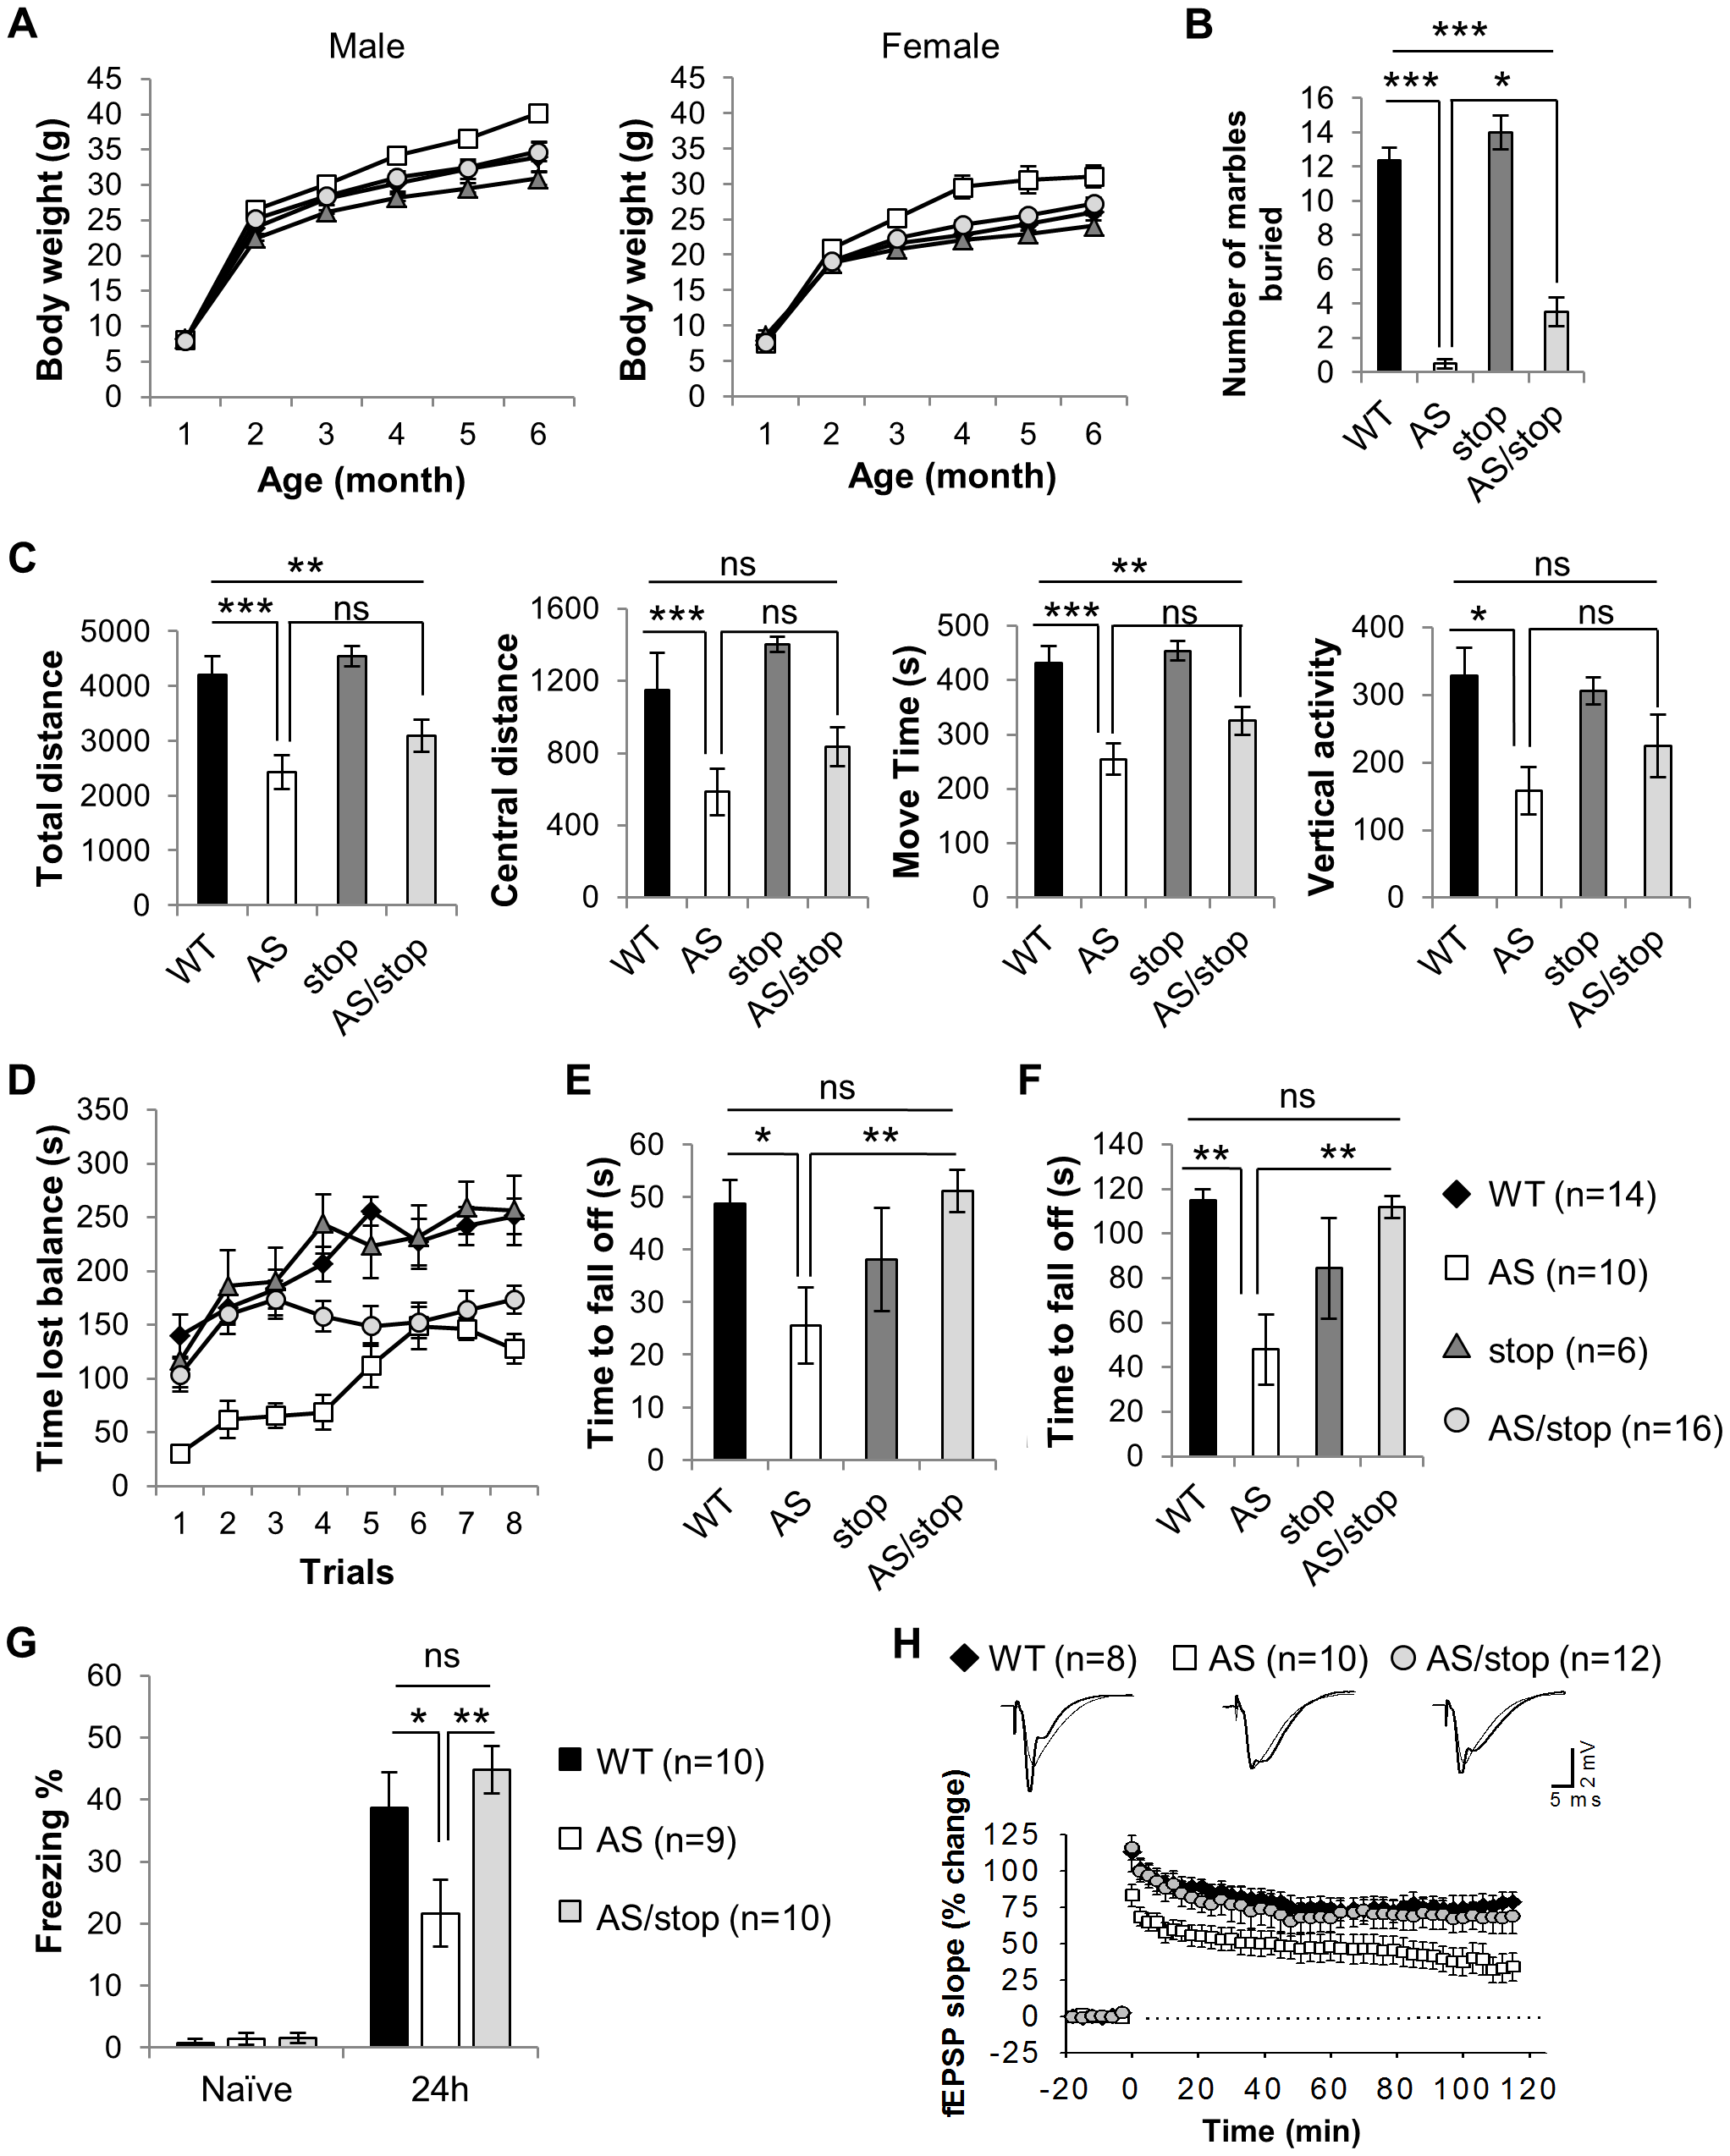 Expression of paternal Ube3a improves phenotypic defects in the AS mouse model.